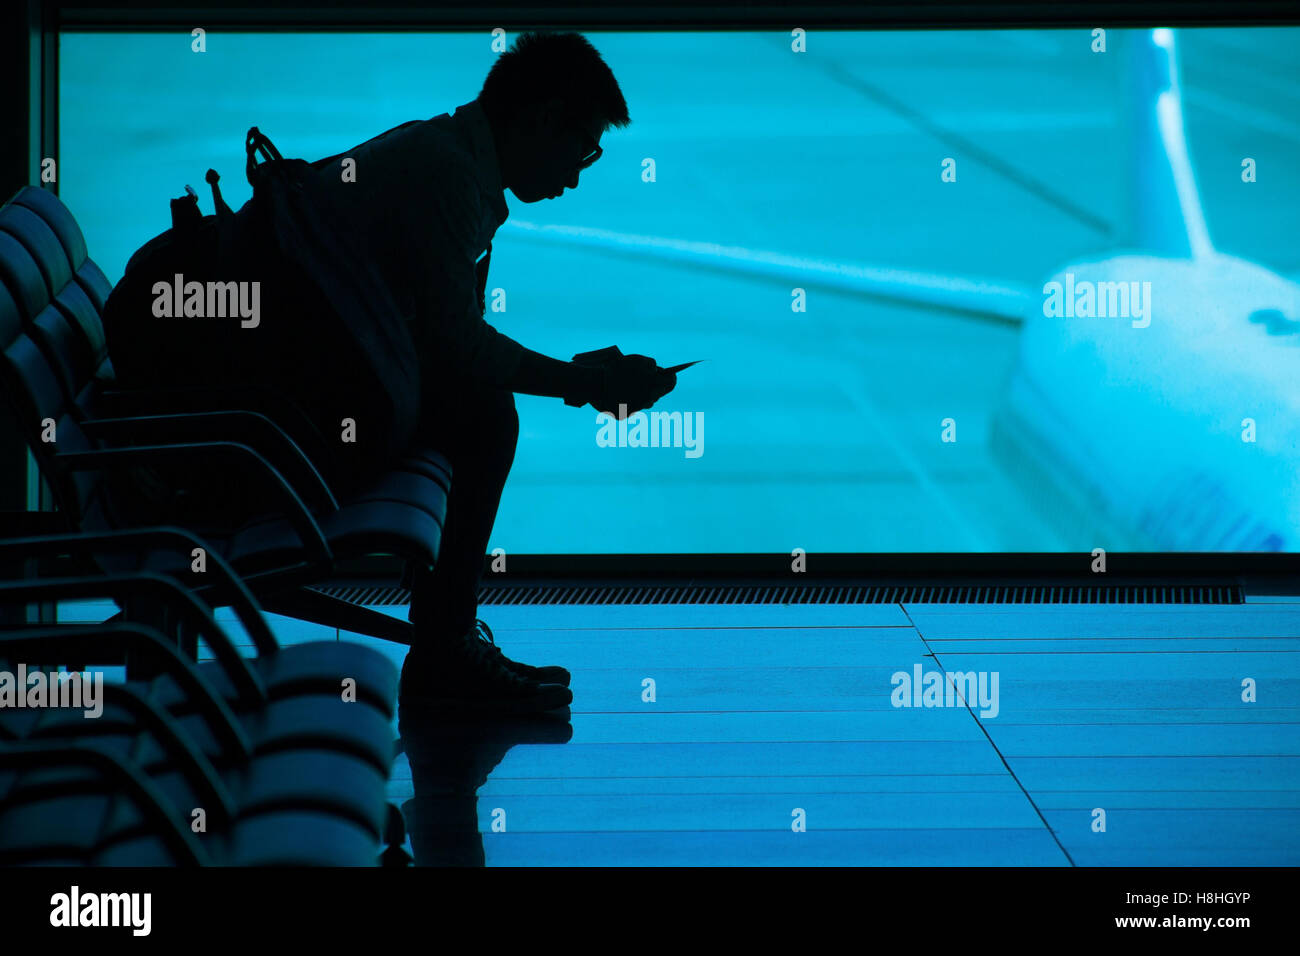 Passenger waiting at airport silhouette - Stock Image